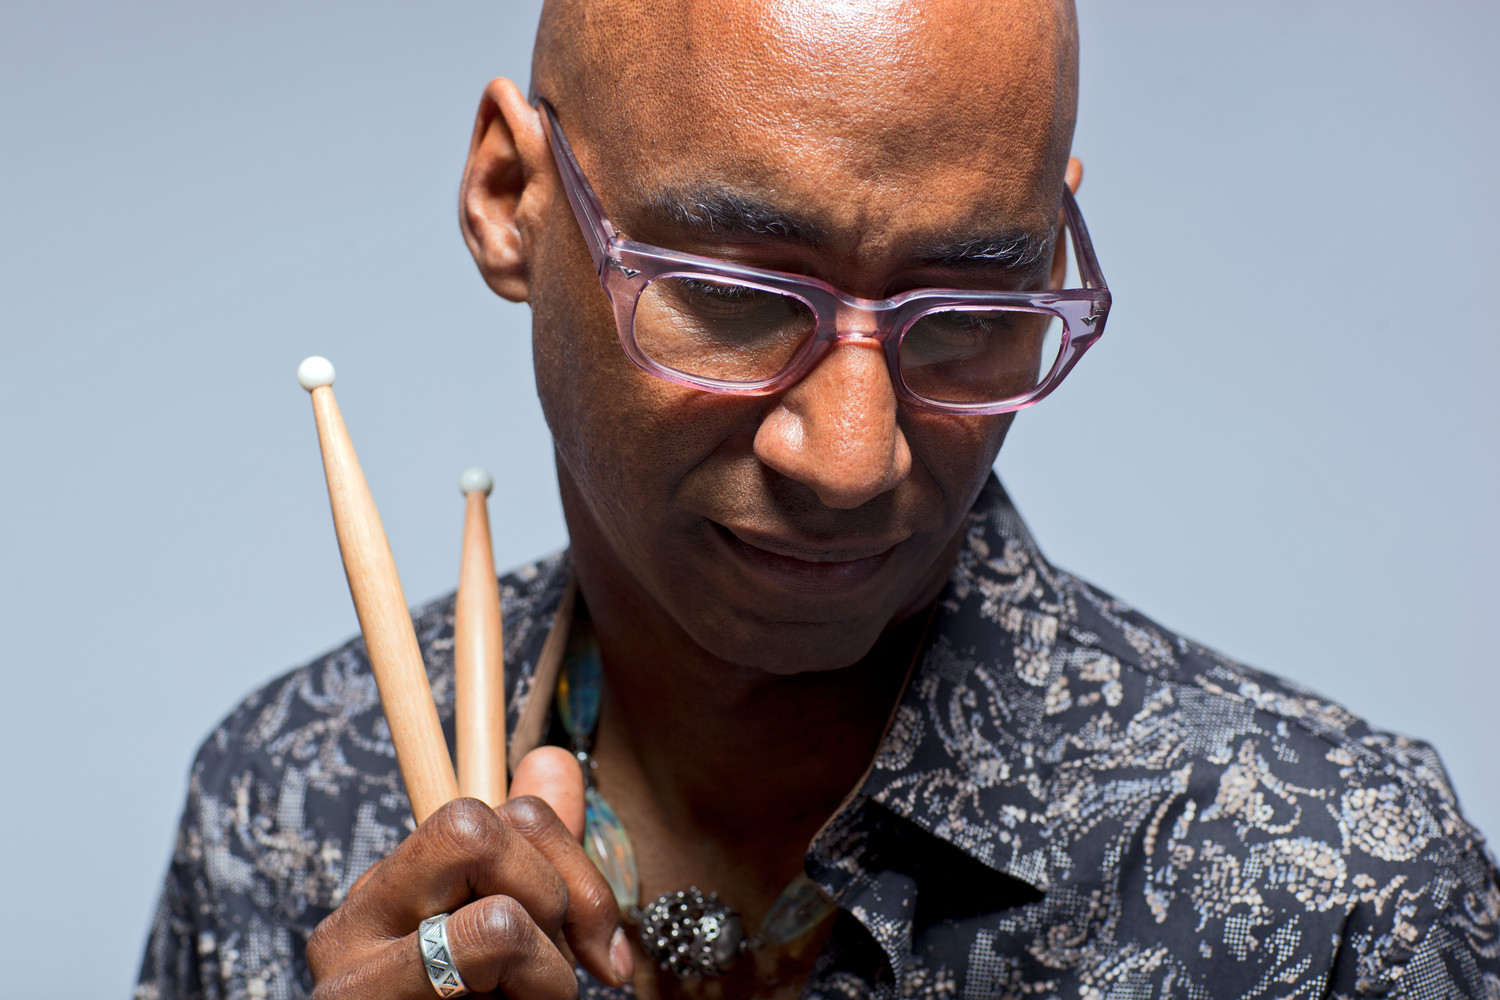 Drummer-arranger-composer Omar Hakim is among the many world-renowned artists appearing in this year's lineup.